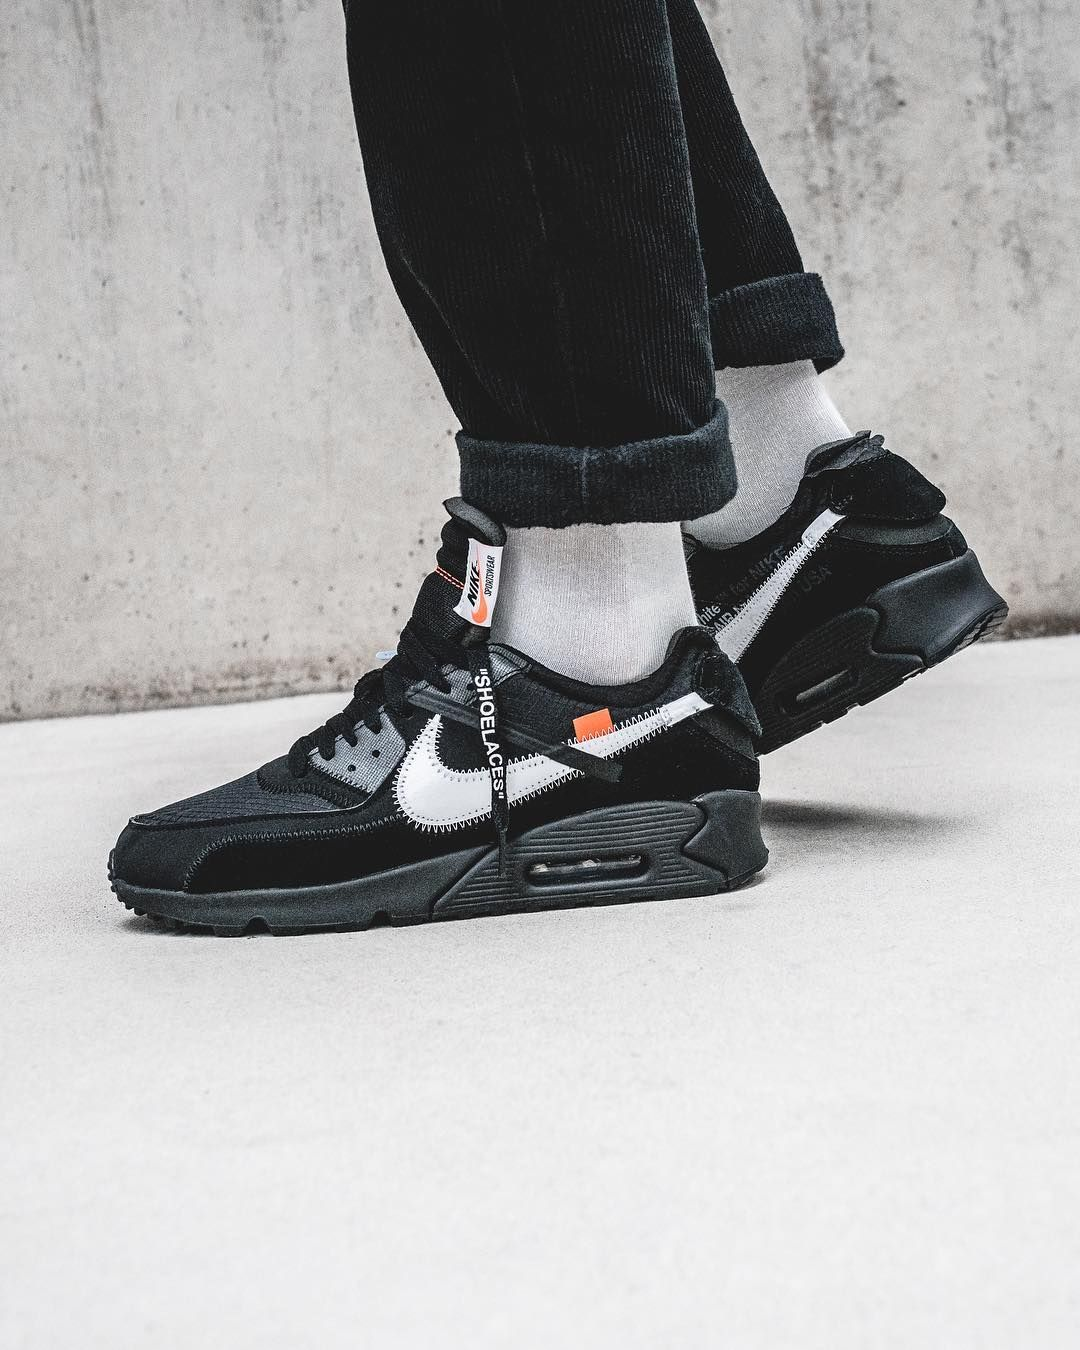 Air Max X Off White Black Nike X Off White Air Max 90 Desert Ore And Black In 2019